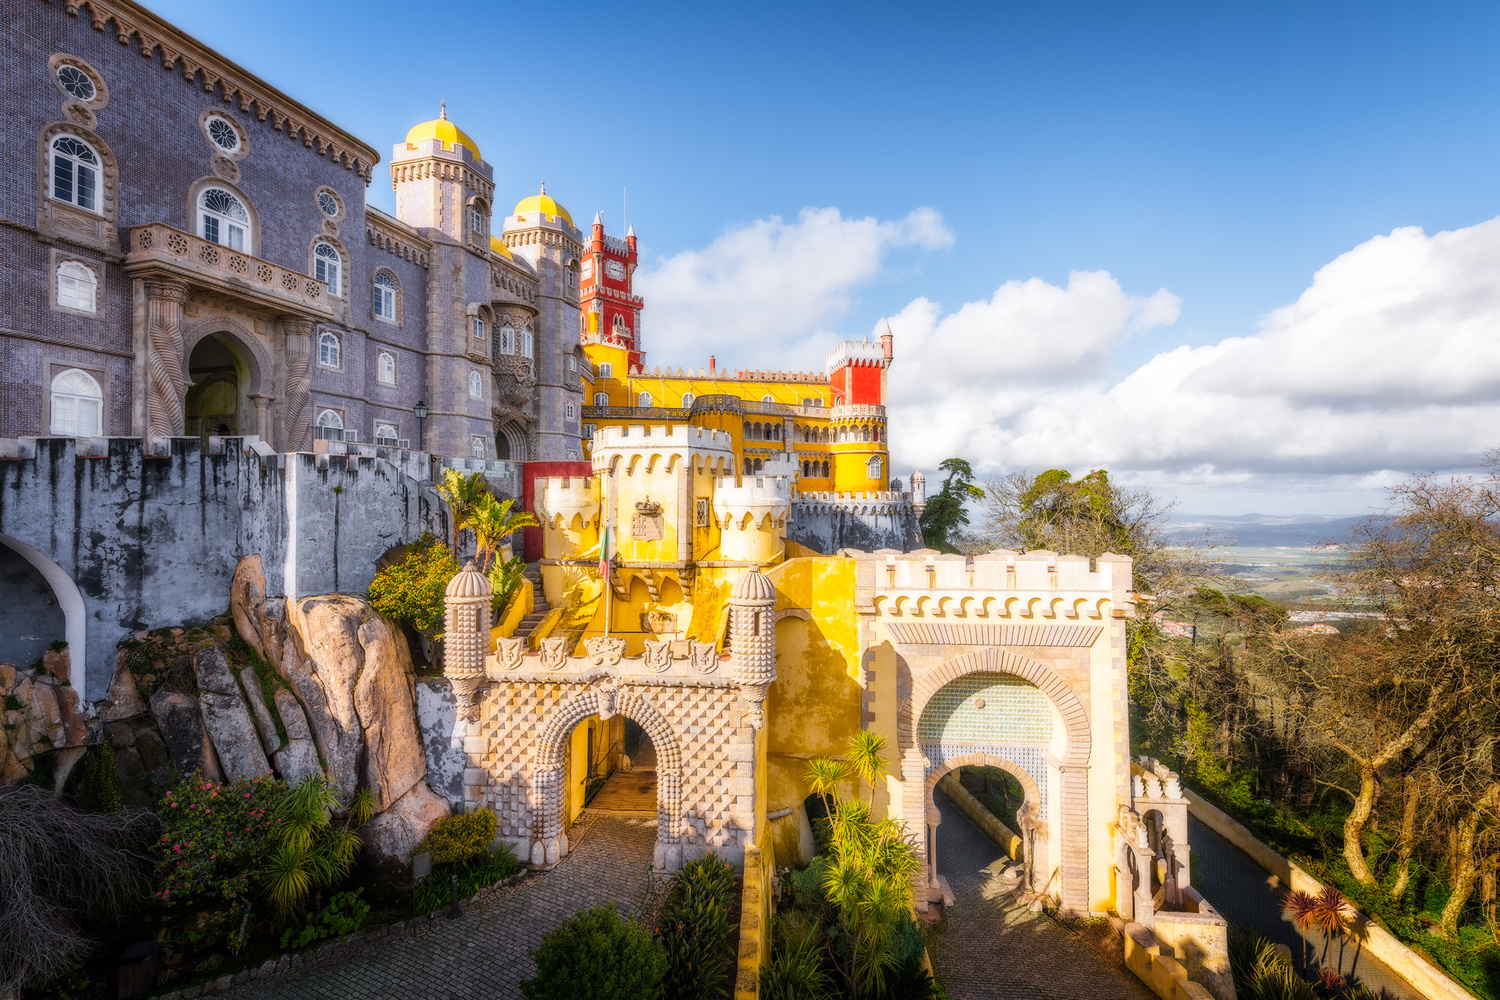 Pena Palace in Sintra mountains | Portugal by Nico Trinkhaus